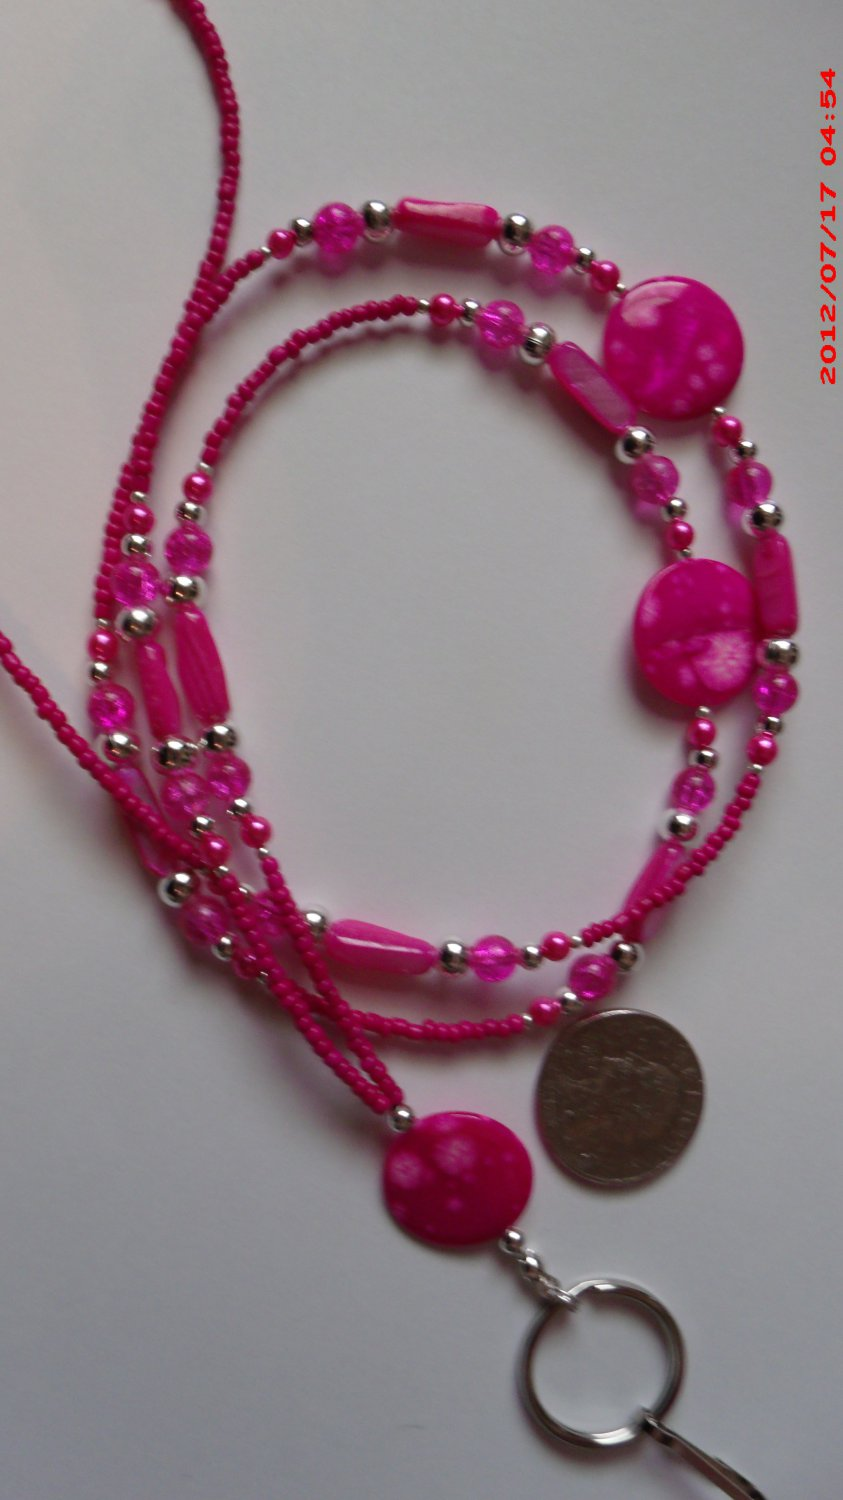 Hot Pink Mother of Pearl Beaded Lanyard ID Badge Holder